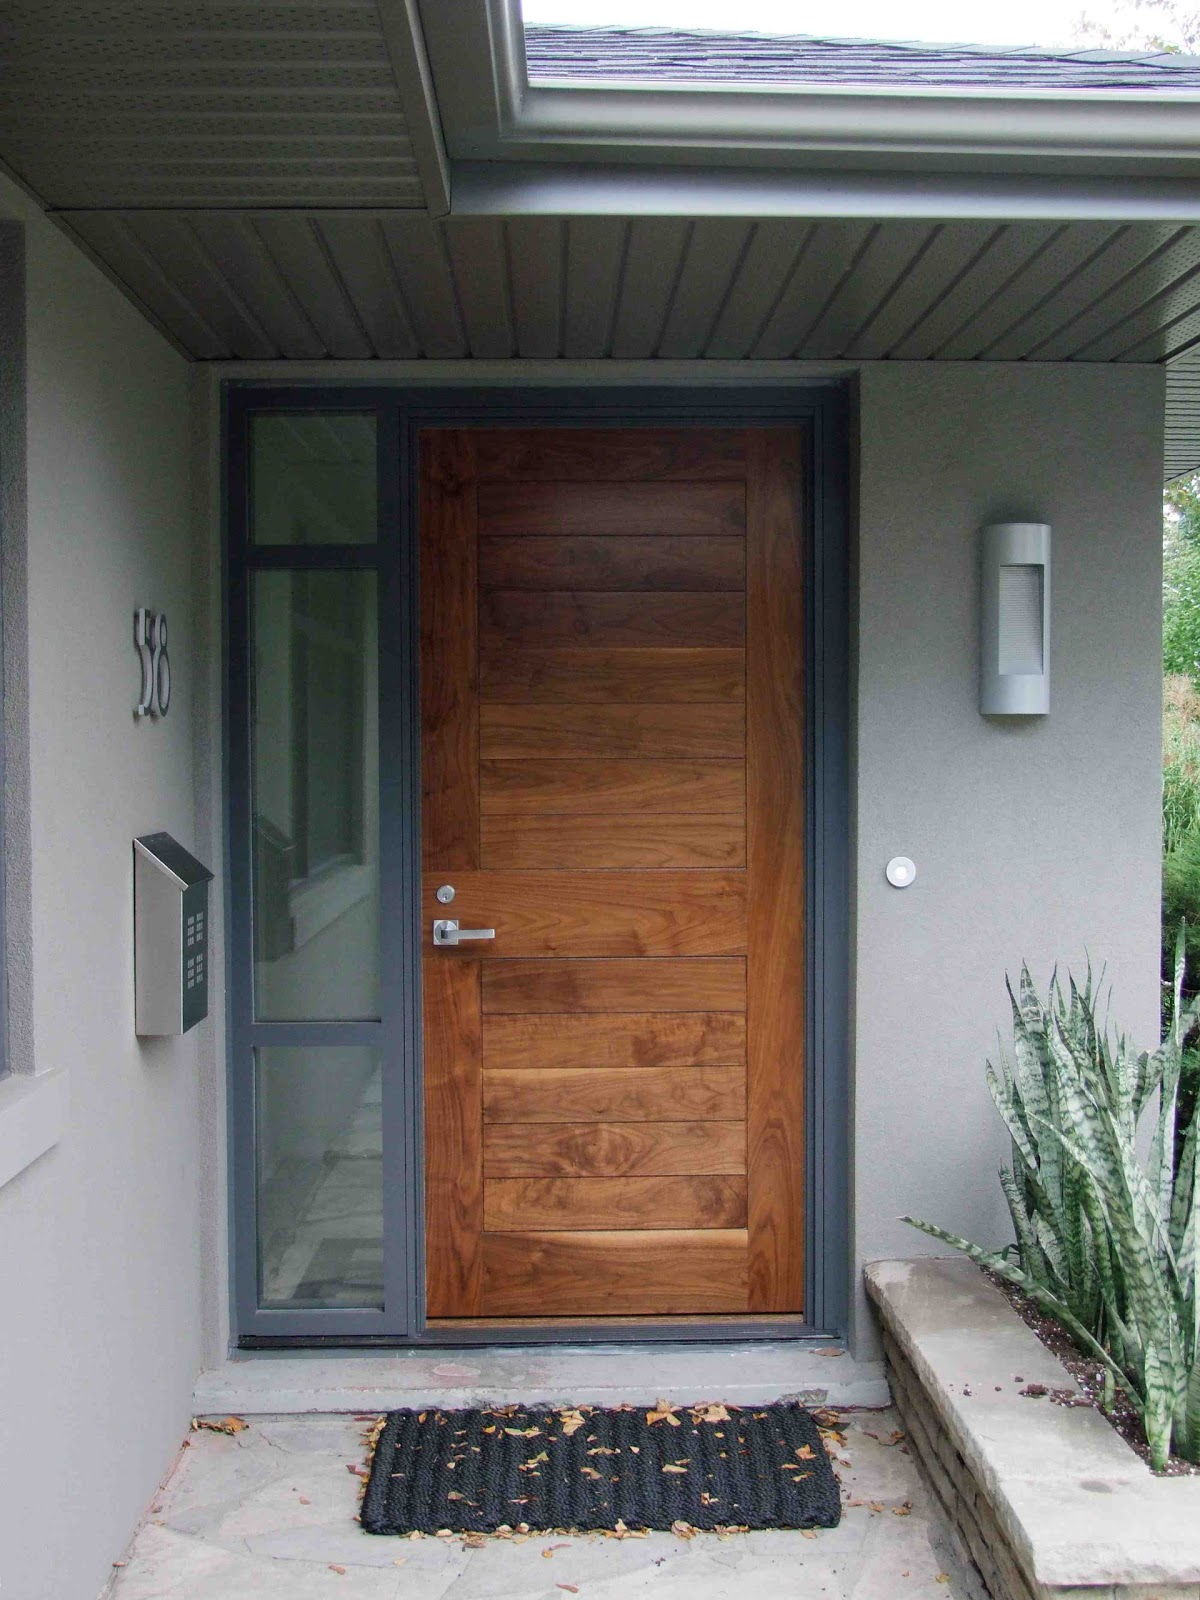 Creed 70 39 s bungalow makes a modern impression for Home front door ideas